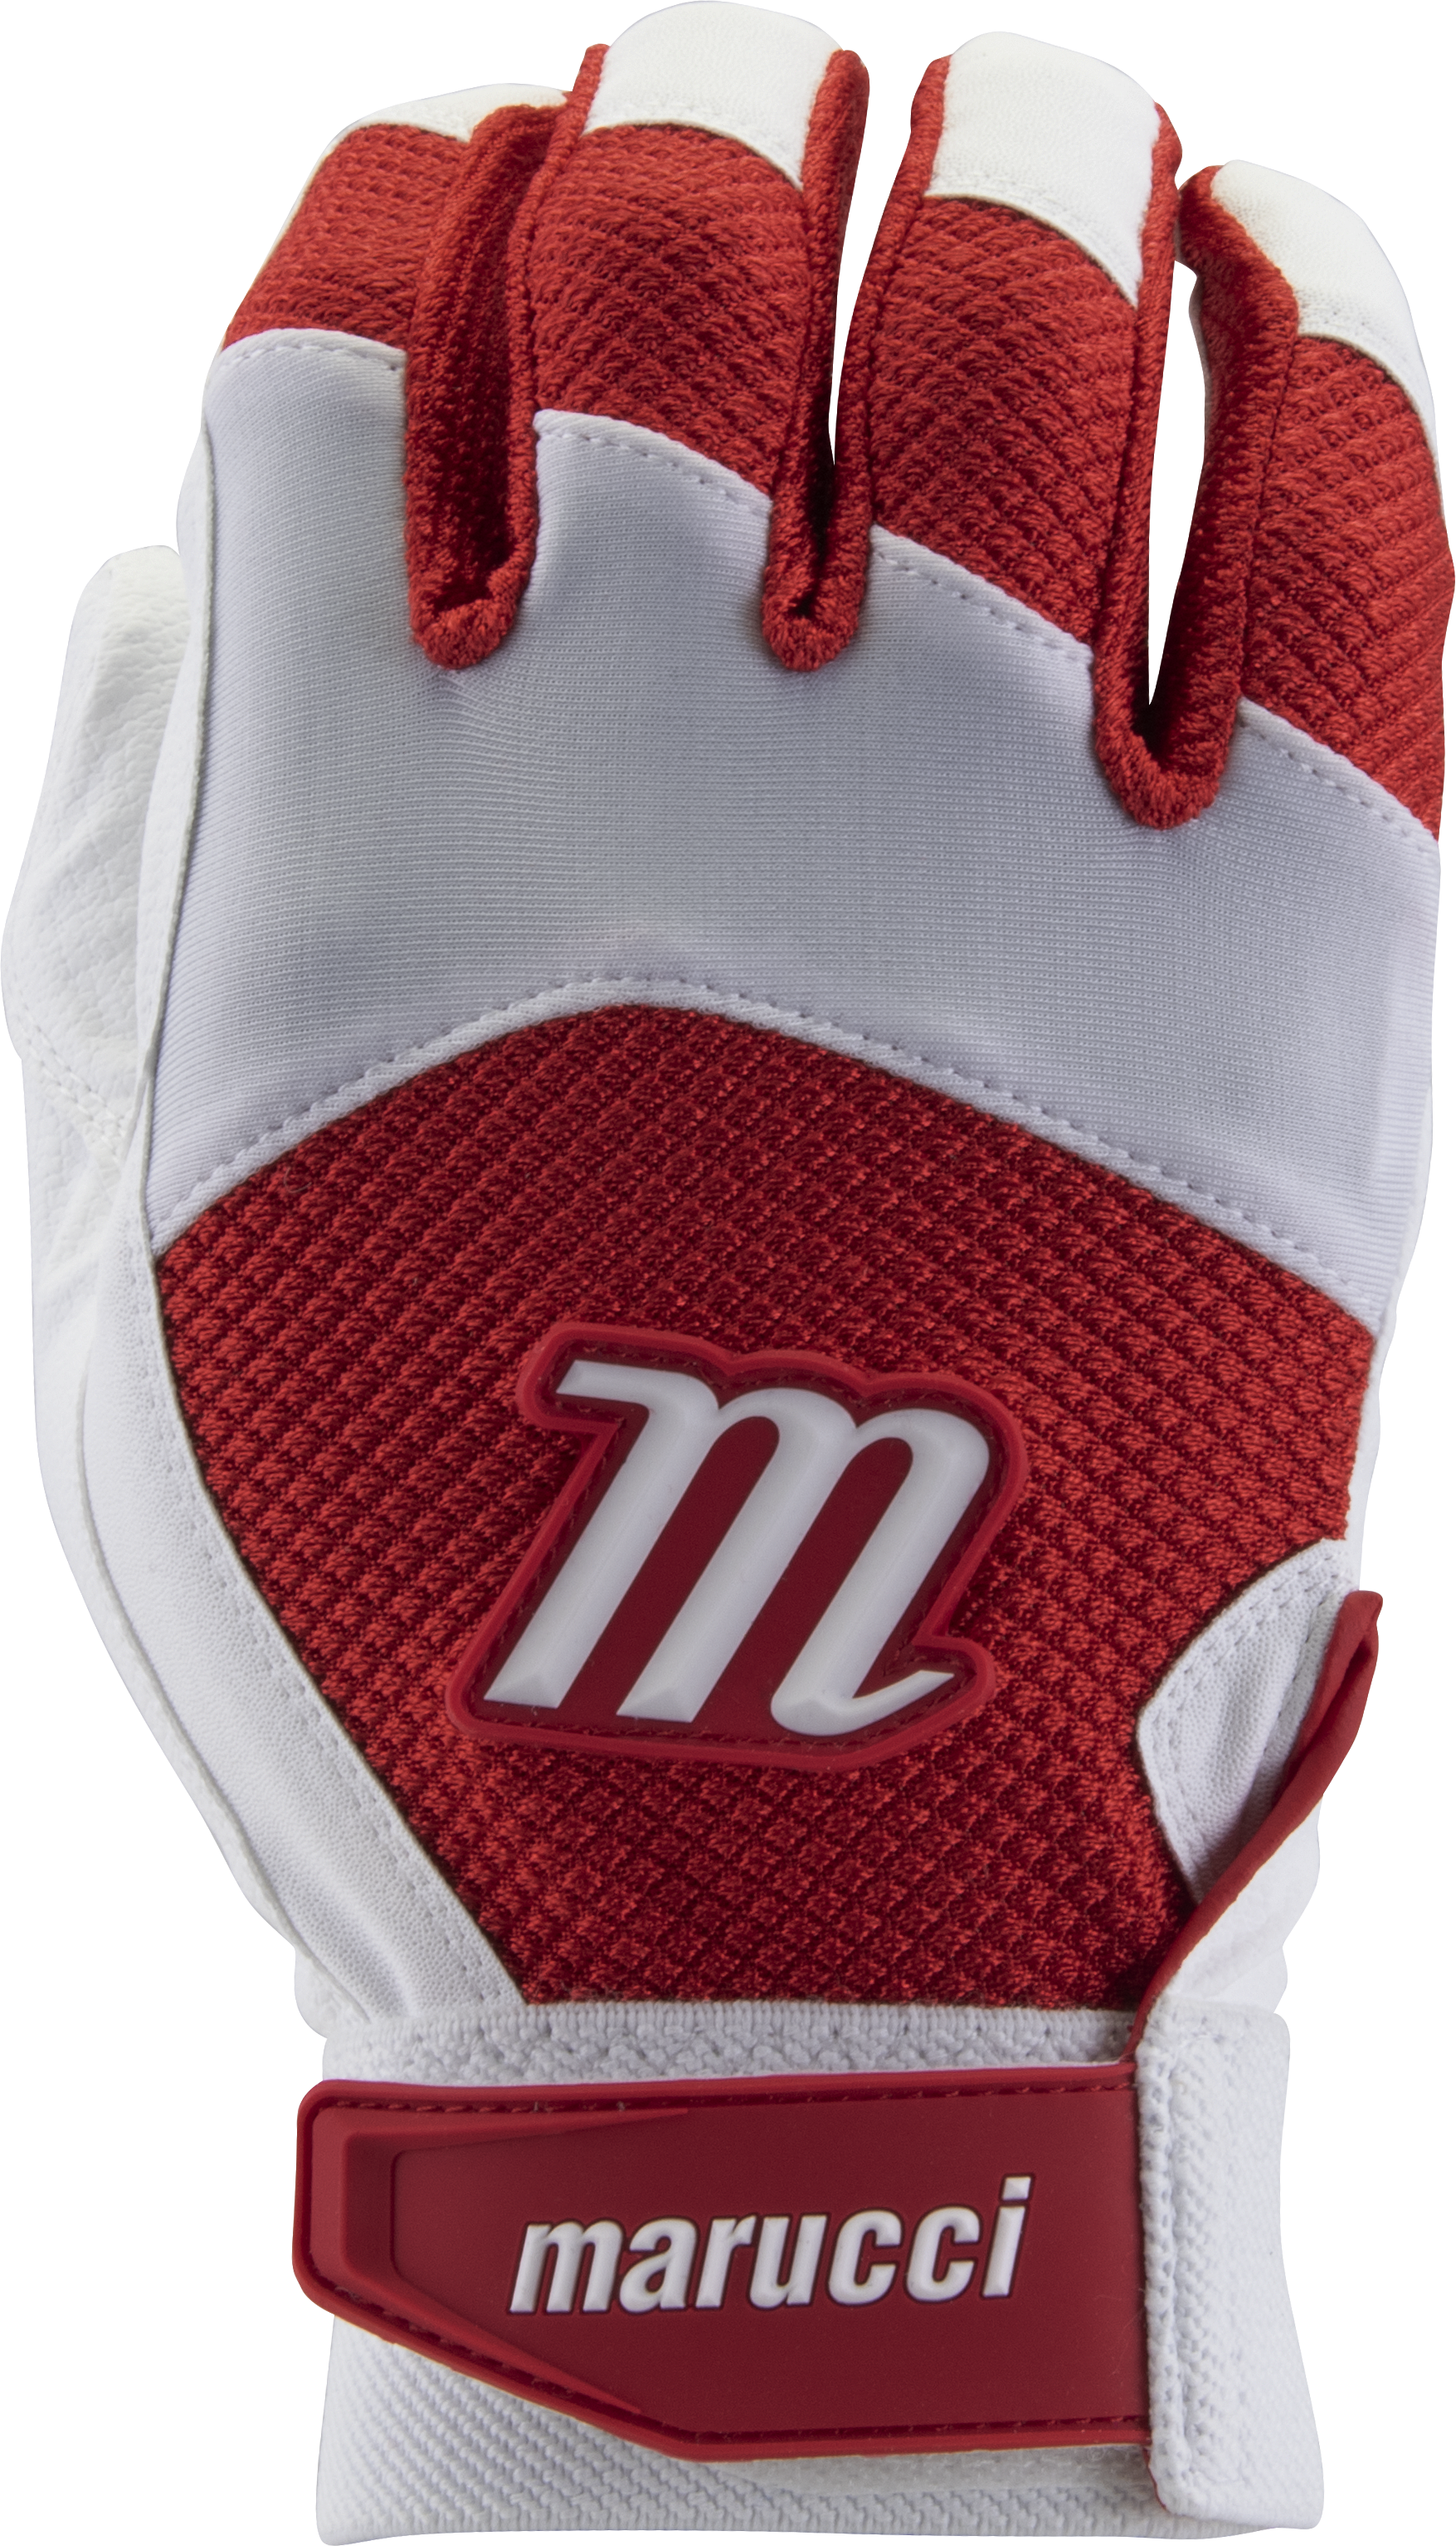 marucci-code-adult-batting-gloves-1-pair-white-red-adult-small MBGCD-WR-AS Marucci 849817096086 2019 Model MBGCD Consistency And Craftsmanship Commitment To Quality And Understanding